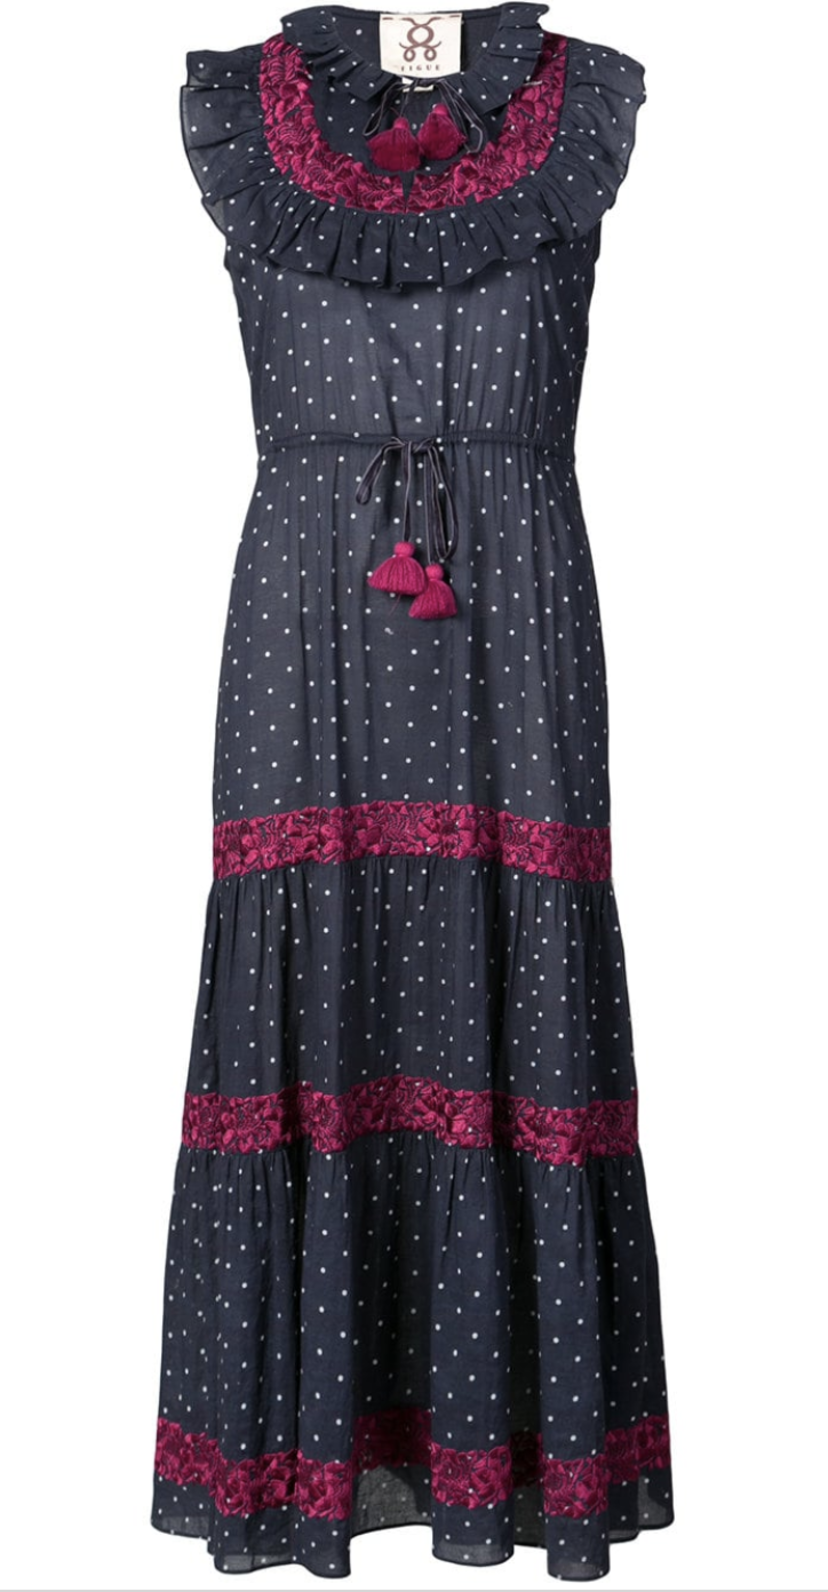 Figue Dotted Dress (Originally $645) Dresses Sale